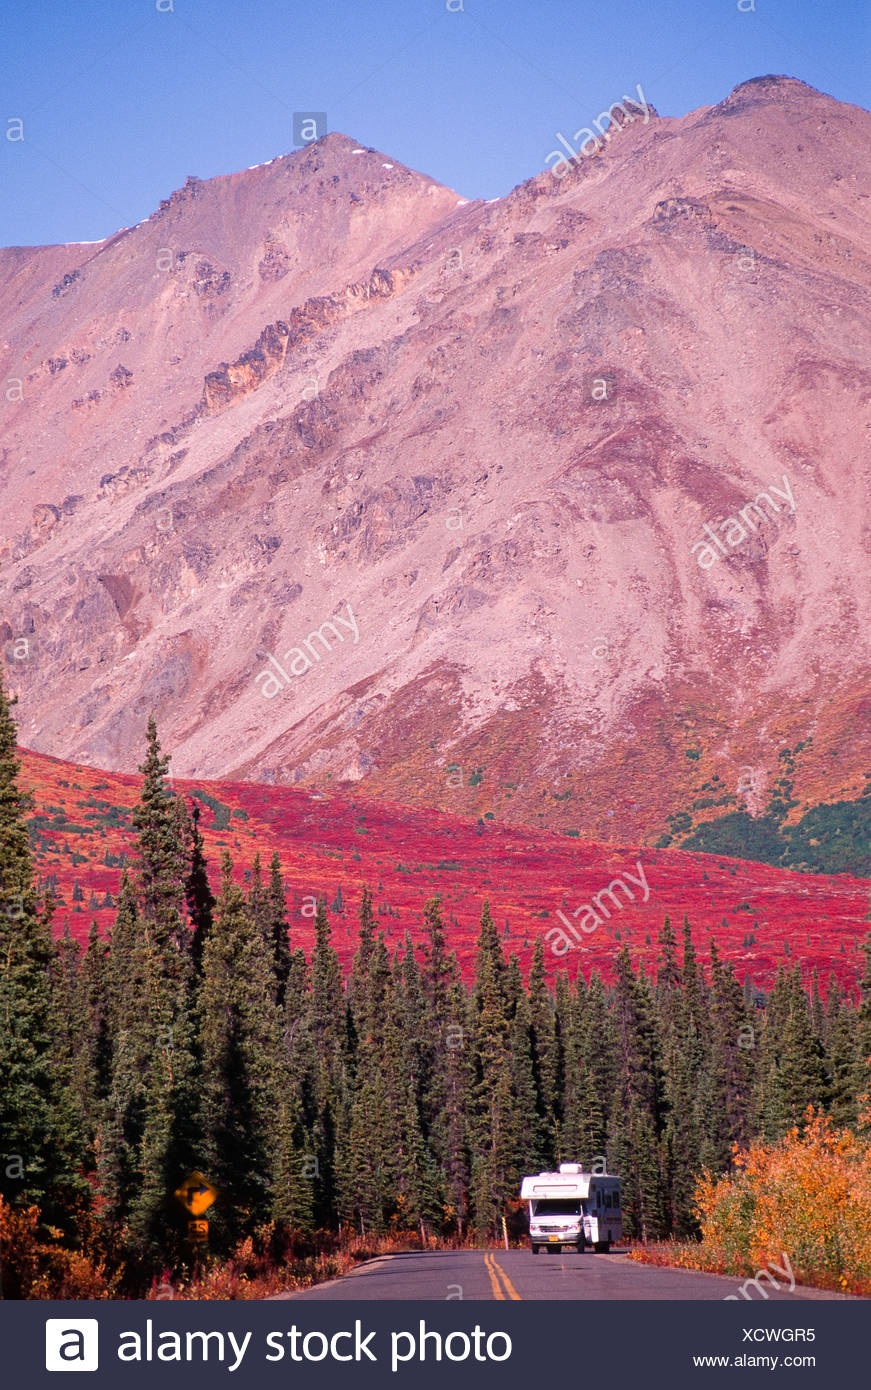 Alaska. Denali NP. Travelers along the Denali Park Rd have amazing views all around them. - Stock Image